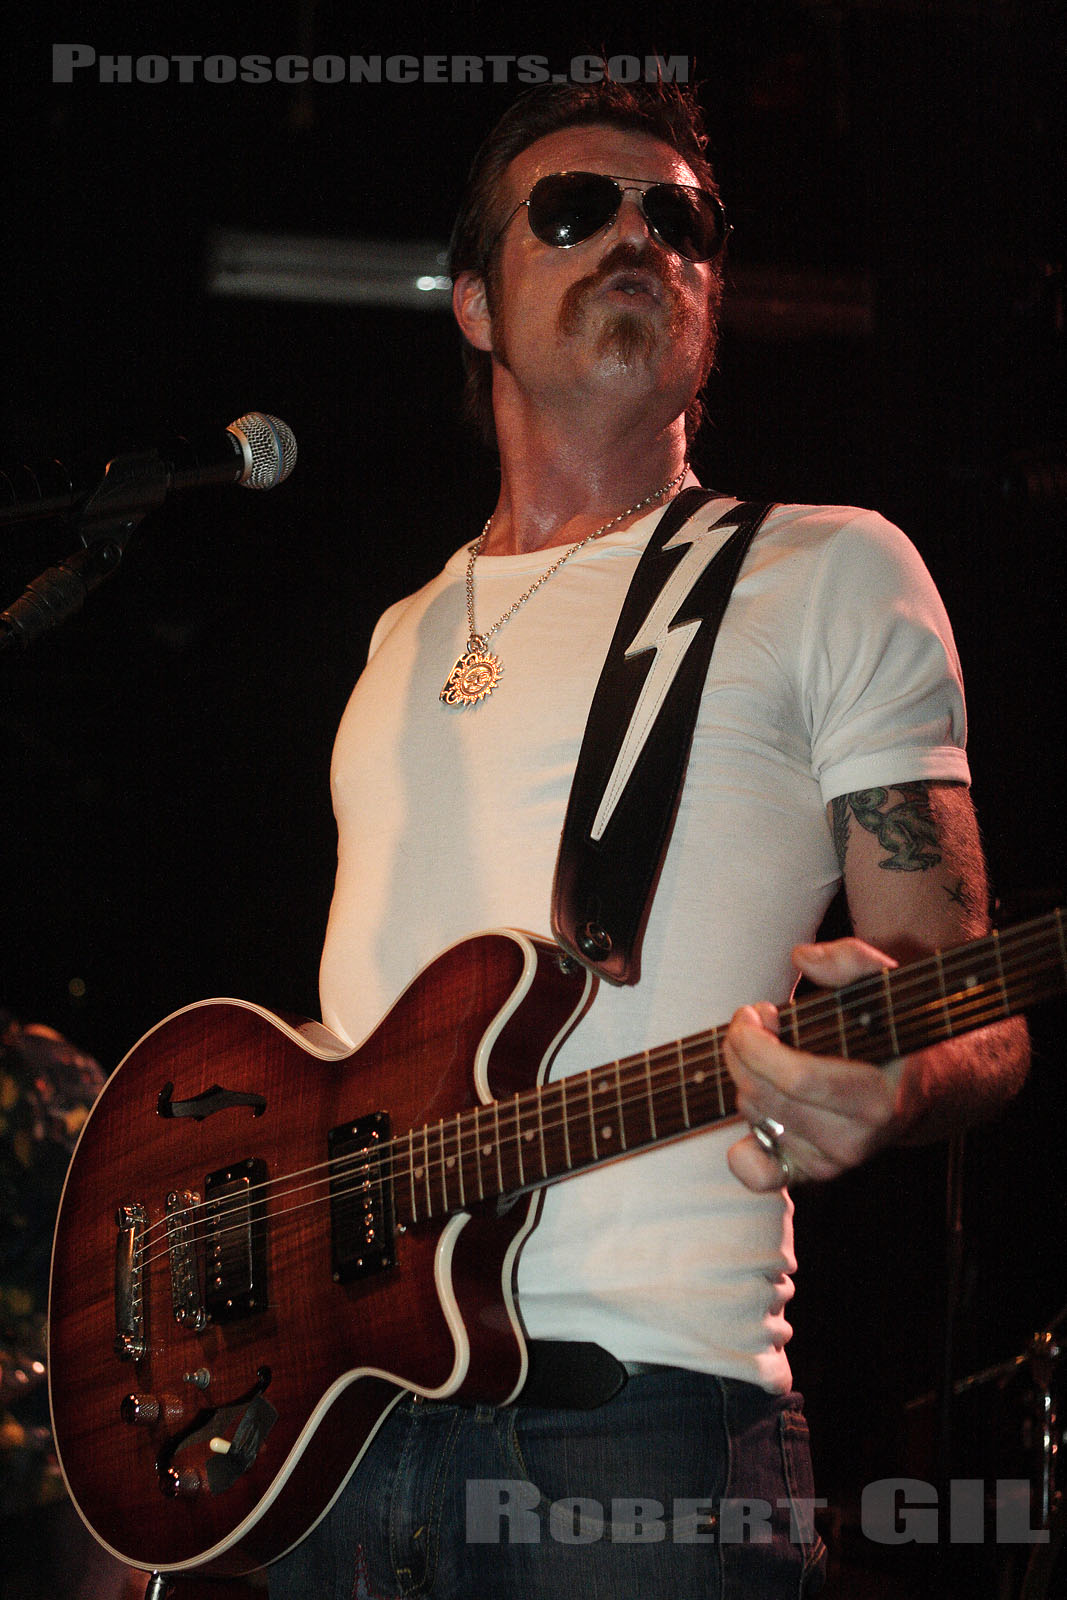 EAGLES OF DEATH METAL - 2006-08-30 - PARIS - Trabendo